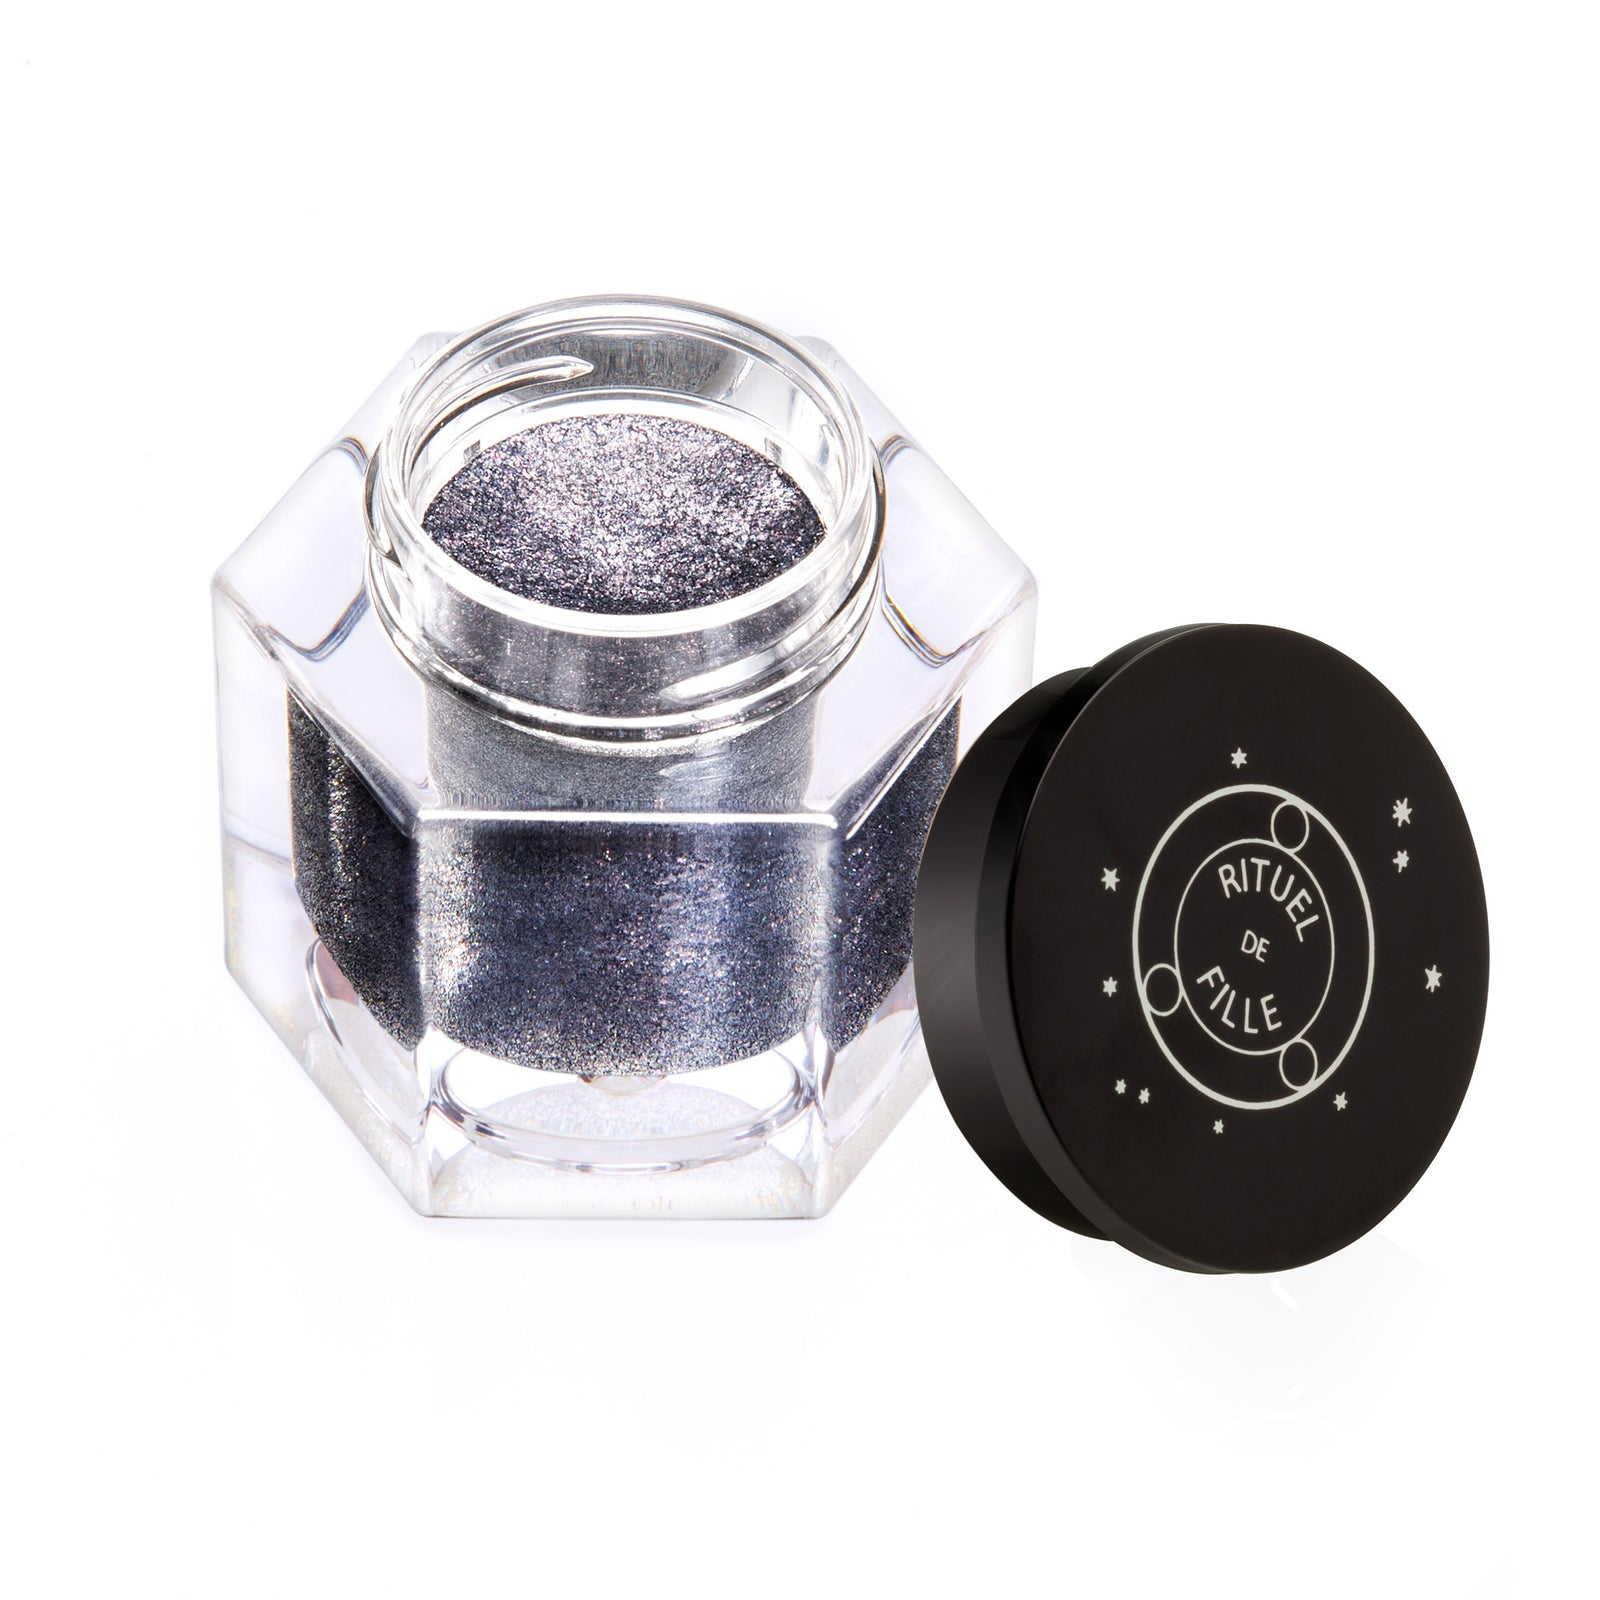 Cassiopeia Celestial Sphere Eye Soot iridescent natural cream eyeshadow